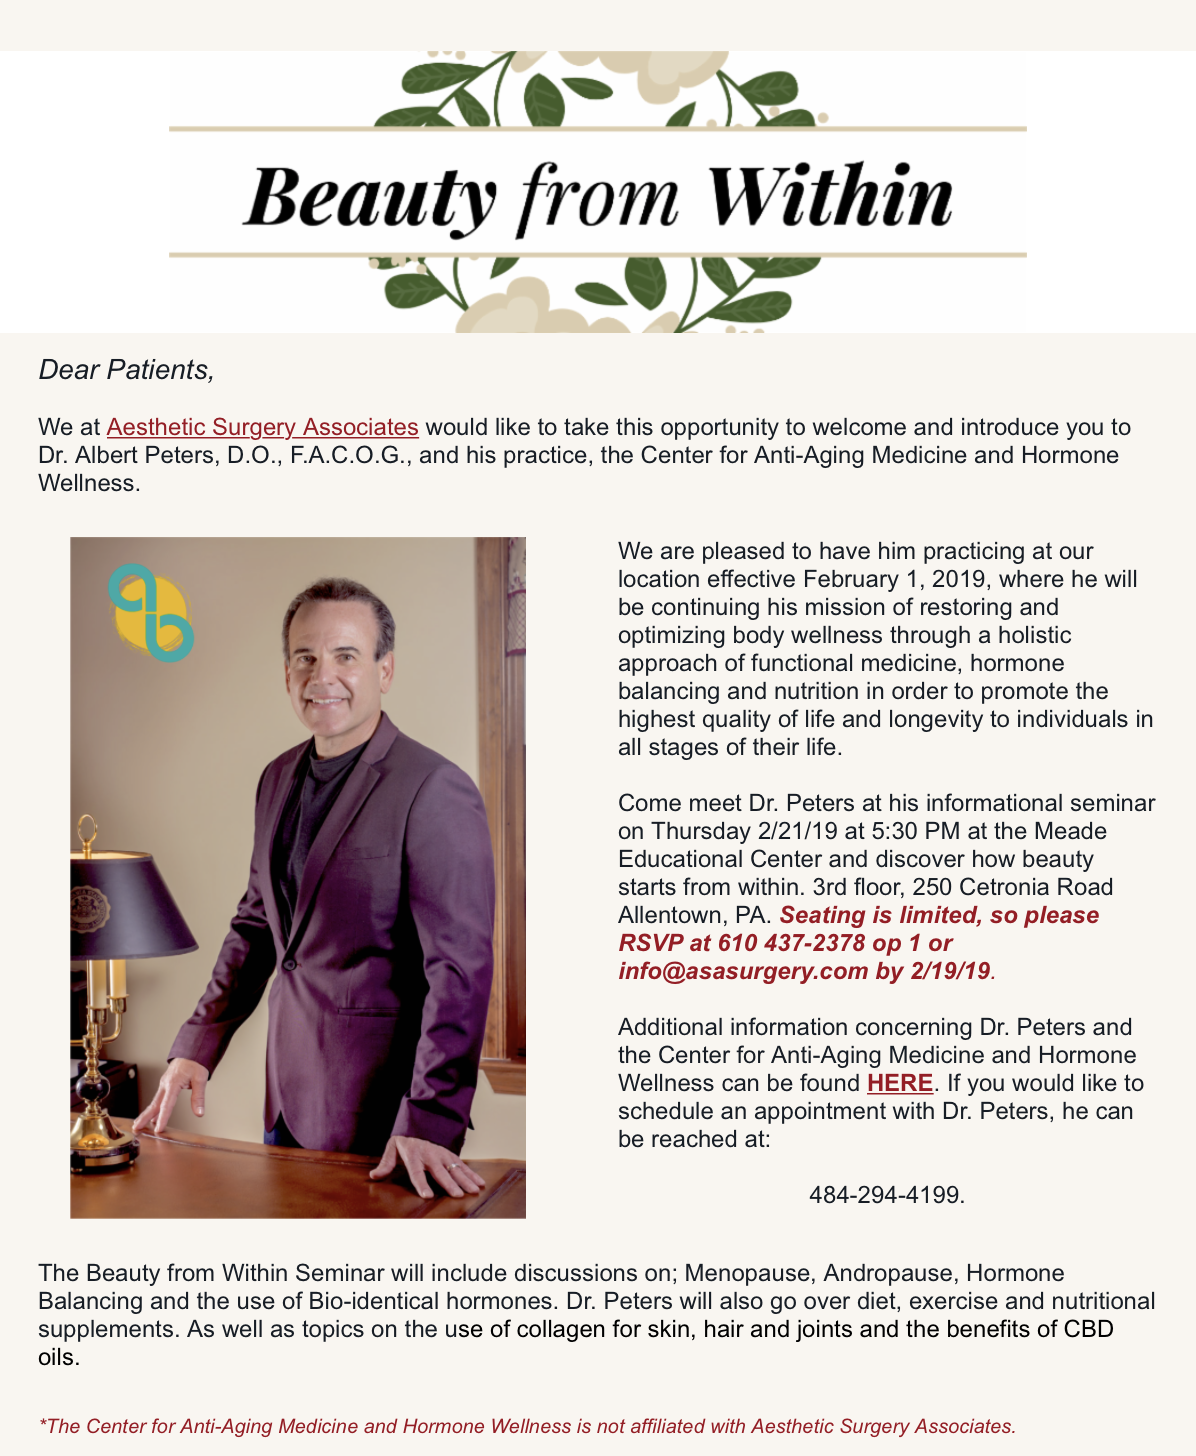 Beauty Starts from Within.. - Come out and meet Dr. Peters at his informational seminar on Thursday February 21st, 2019 at 5:30pm at the Meade Educational Center located on the 3rd floor of the Integrated Health Campus, 250 Cetronia Road, Suite 301, Allentown PA 18104.The Beauty from Within Seminar will include discussions on; Menopause, Andropause, Hormone Balancing and the use of Bio-identical hormones. Dr. Peters will also go over diet, exercise and nutritional supplements. As well as topics on the use of collagen for skin, hair and joints and the benefits of CBD oils.Limited Seating - please call to RSVP: 610.437.2378 / info@asasurgery.com